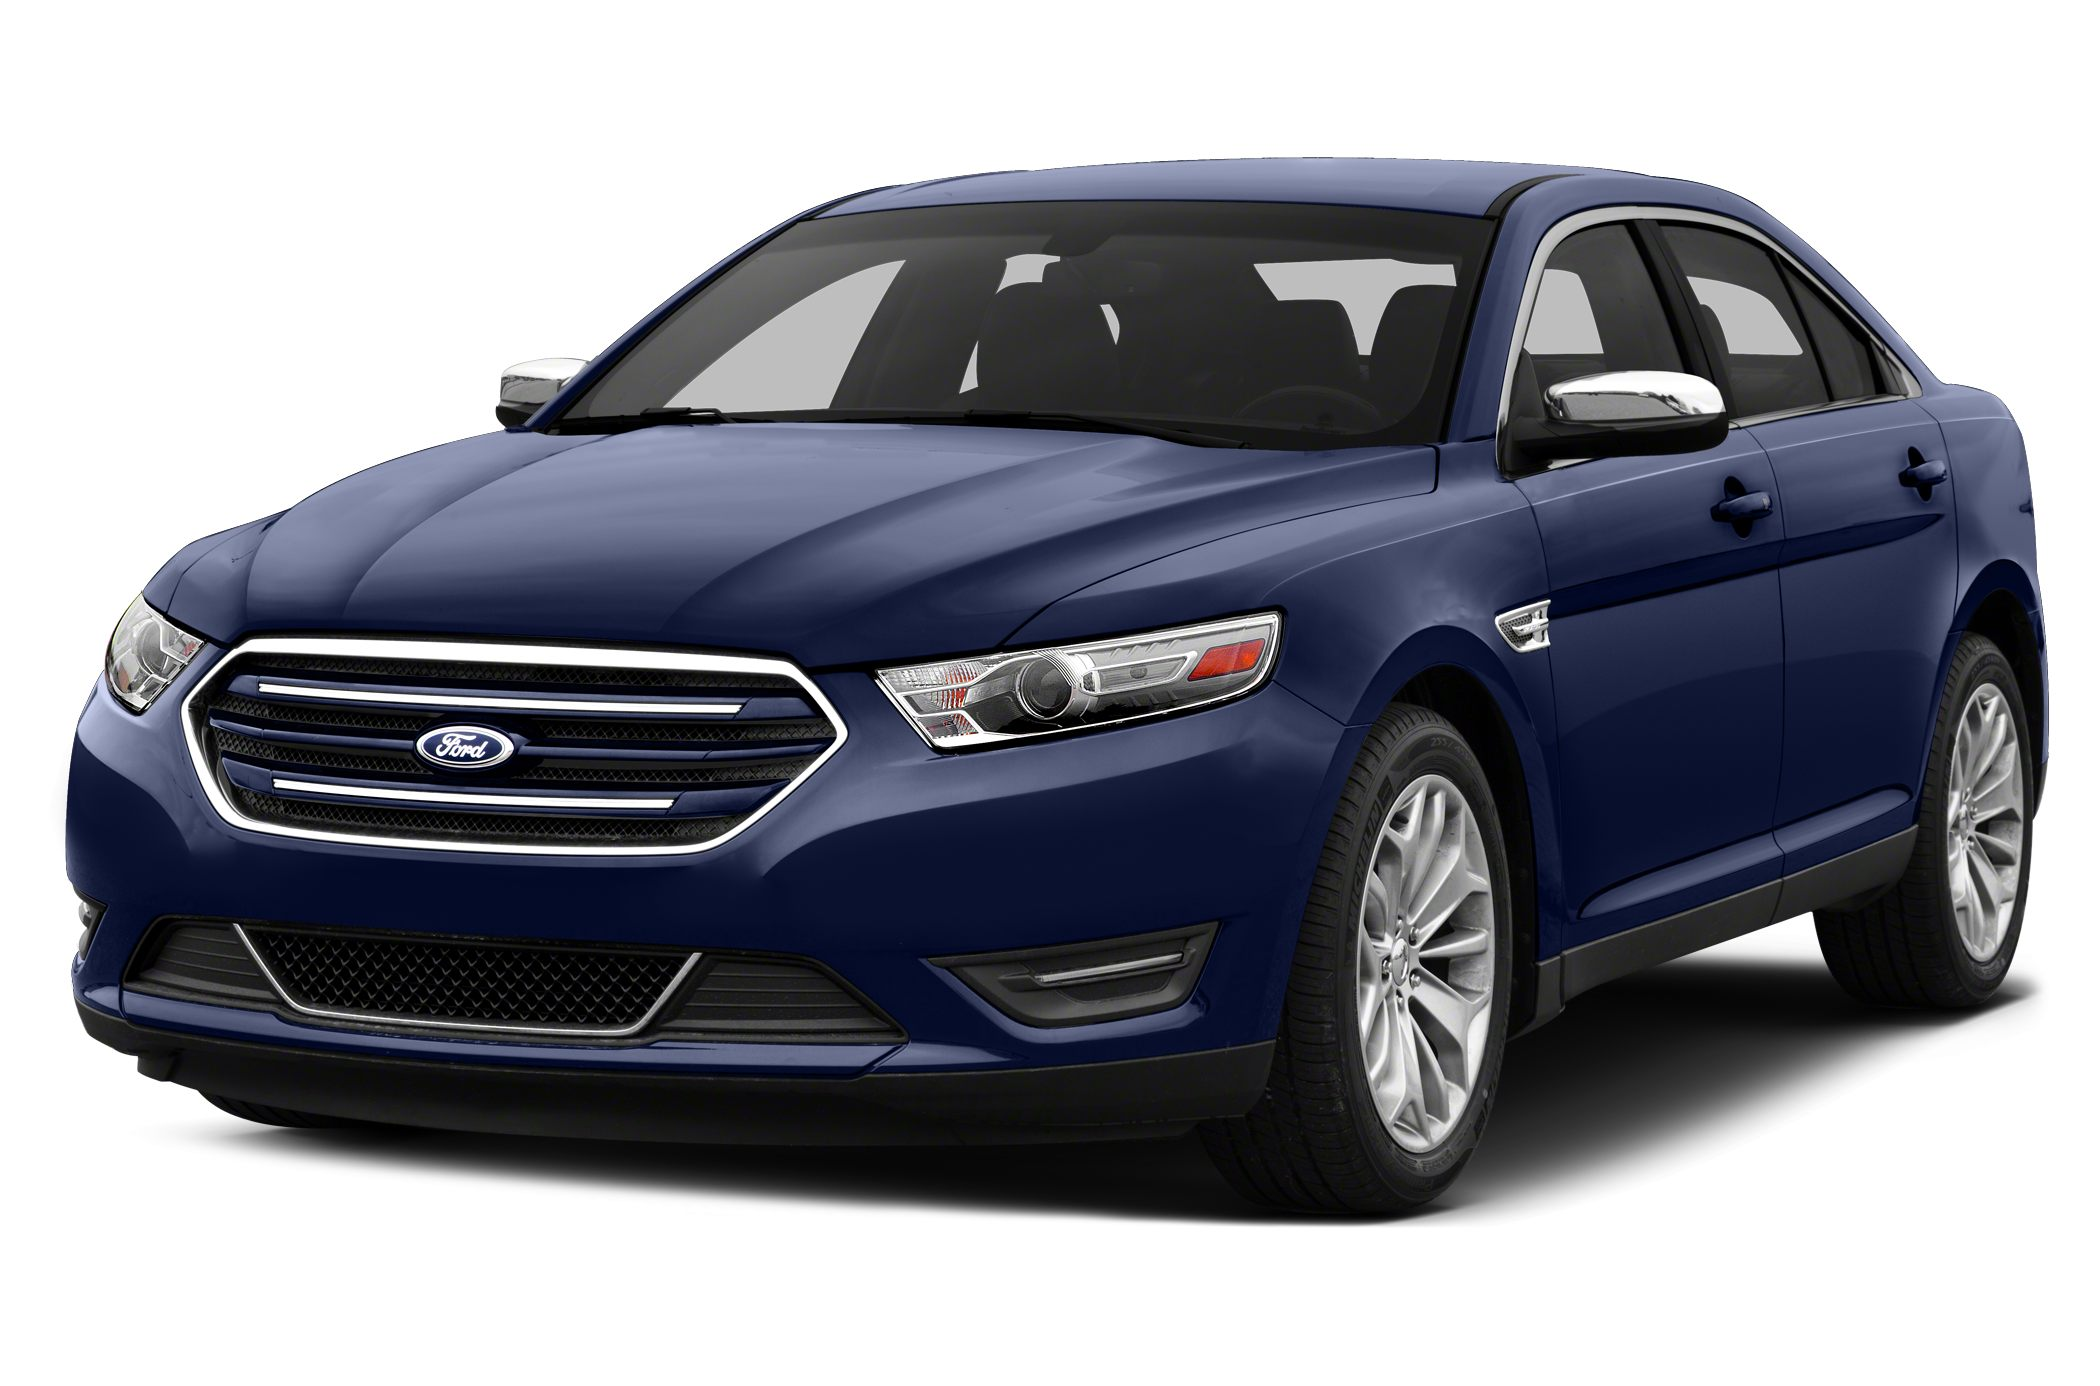 2013 Ford Taurus Limited Sedan for sale in Houston for $20,986 with 30,003 miles.